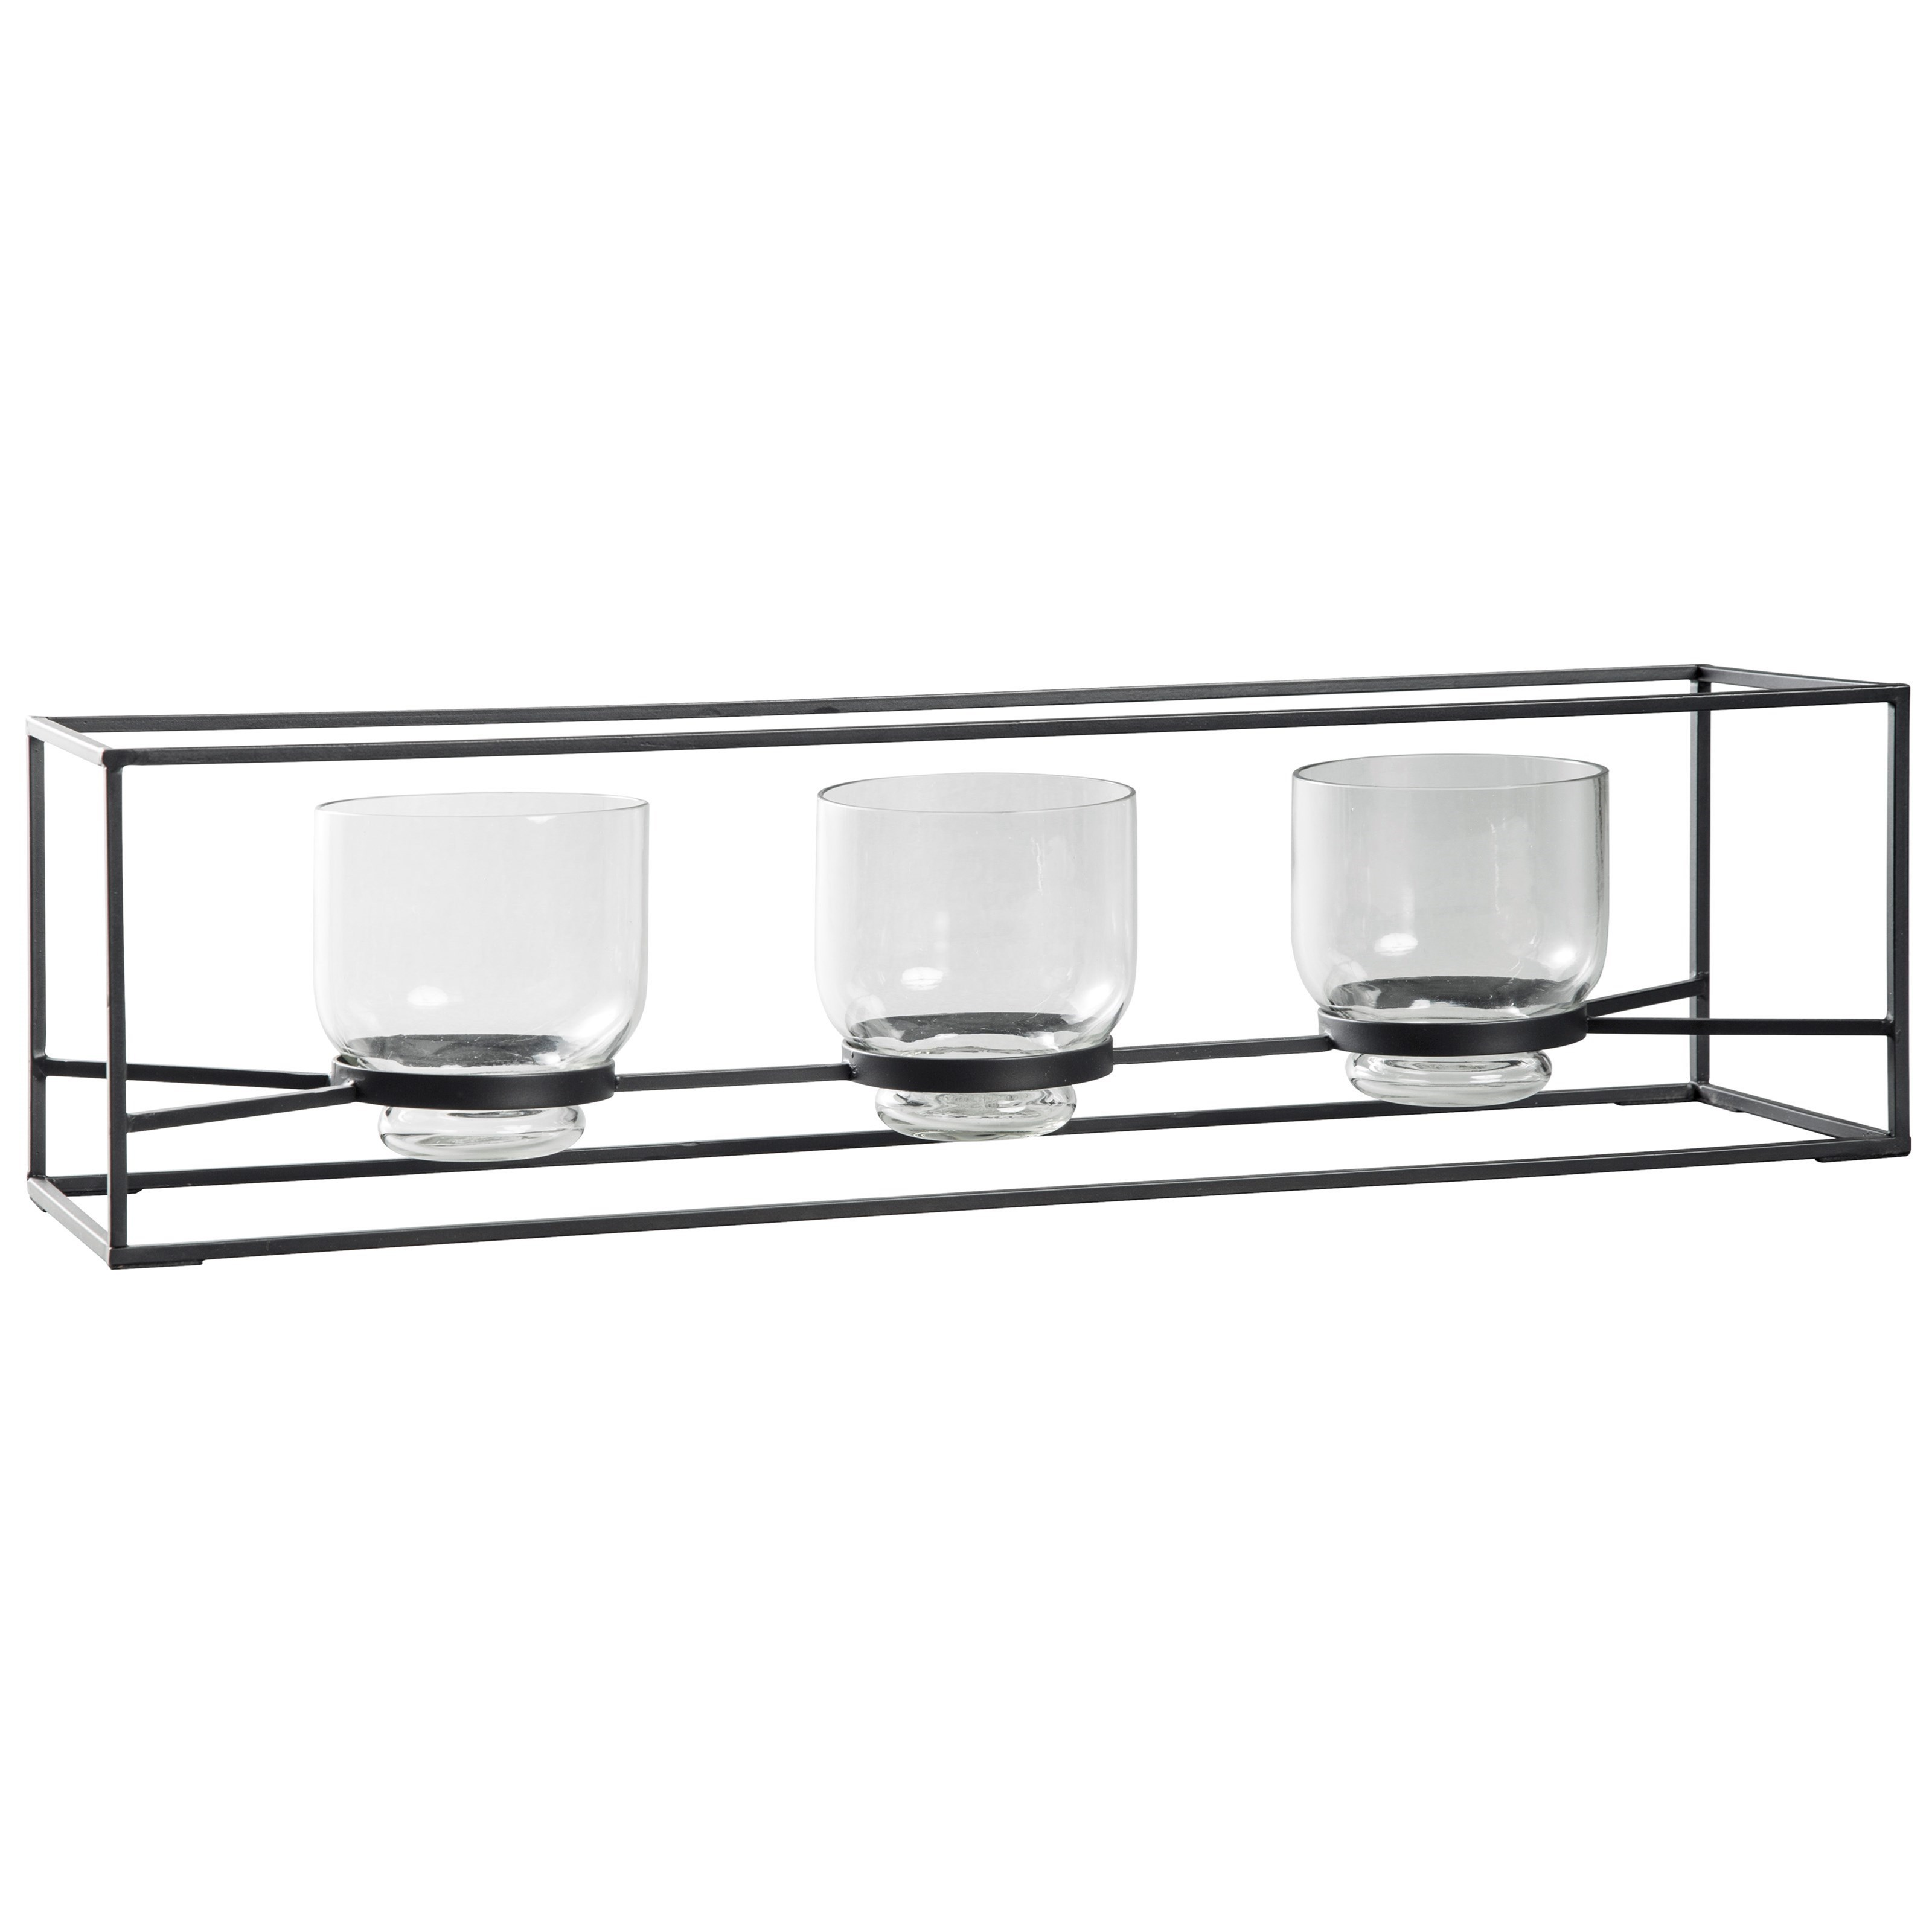 Signature Design By Ashley Accents Jadyn Black Candle Holder Royal Furniture Candle Holders